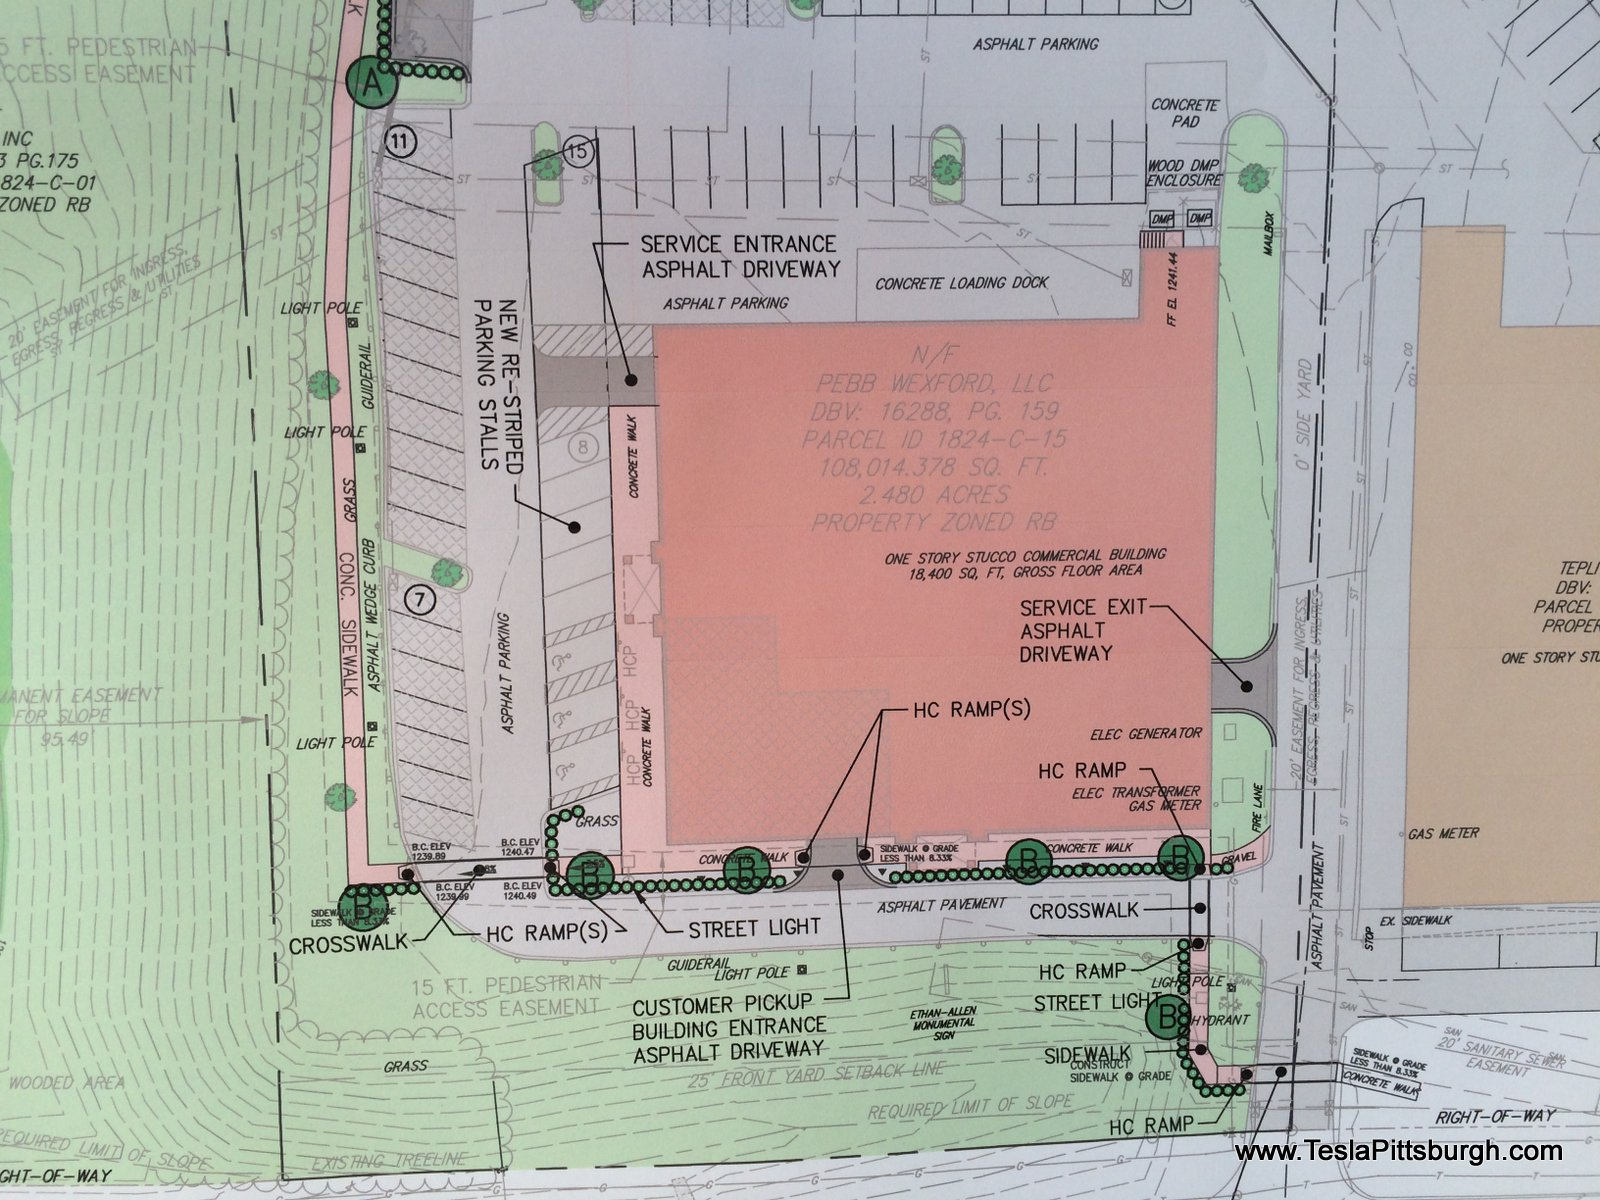 full color building site plan for tesla pittsburgh service center